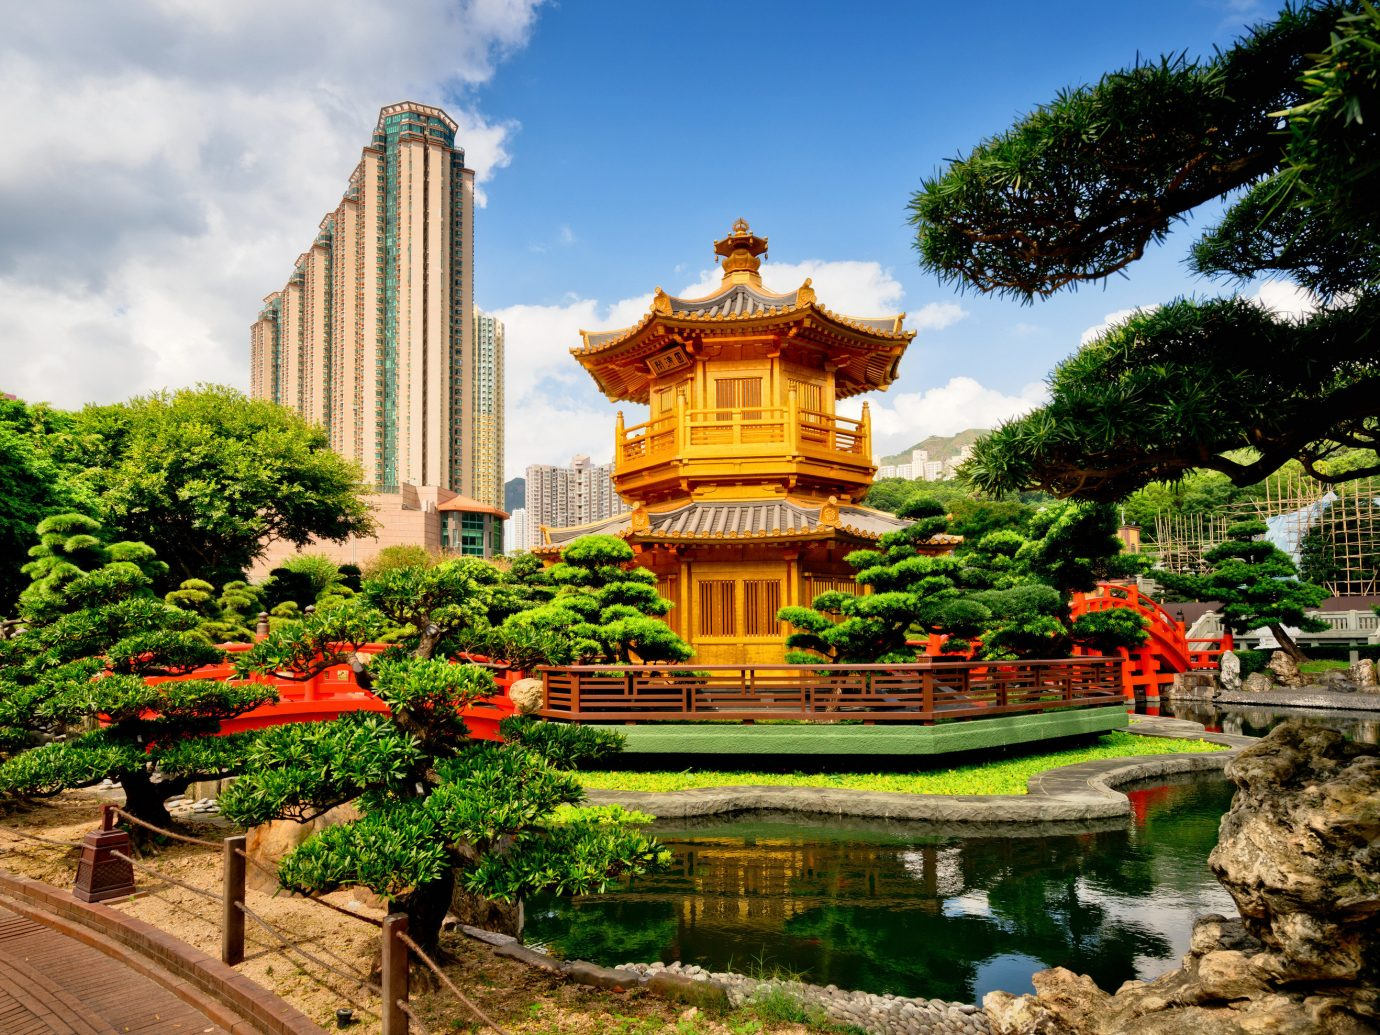 Travel Tips tree outdoor sky Nature landmark tourist attraction plant Garden leaf botanical garden pagoda chinese architecture leisure temple tourism landscape landscaping outdoor structure City park water feature estate flower